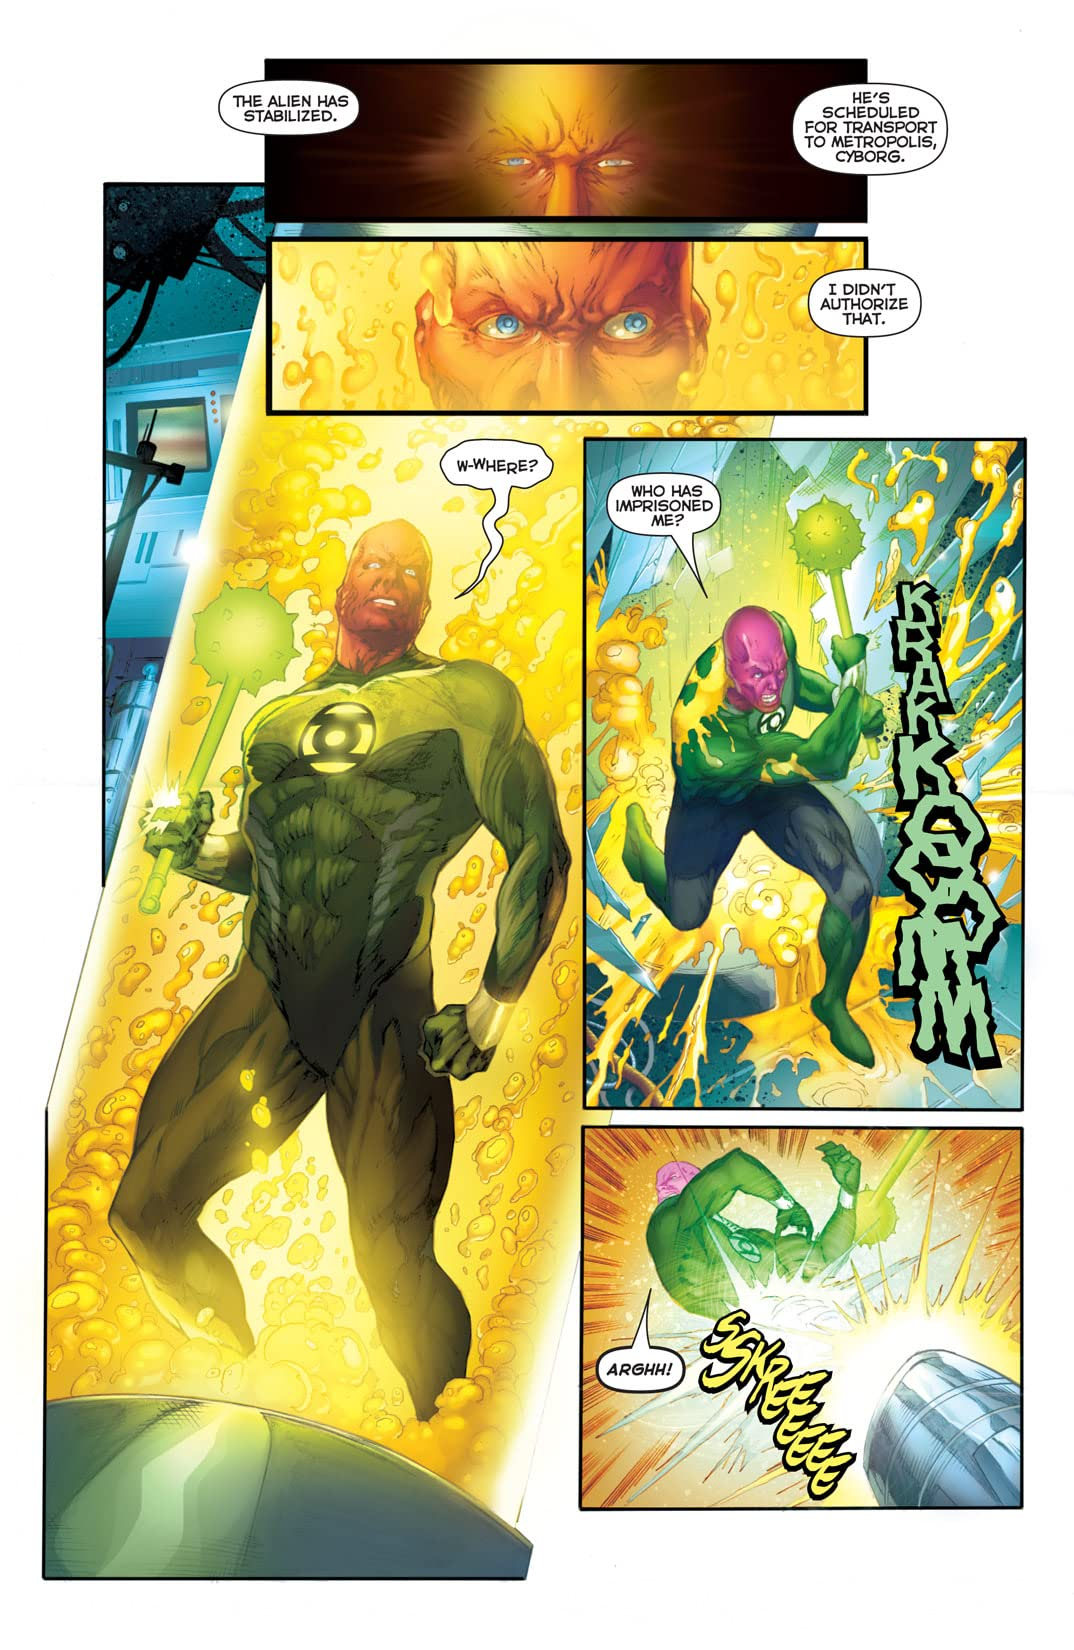 Flashpoint: Abin Sur - The Green Lantern #2 (of 3)